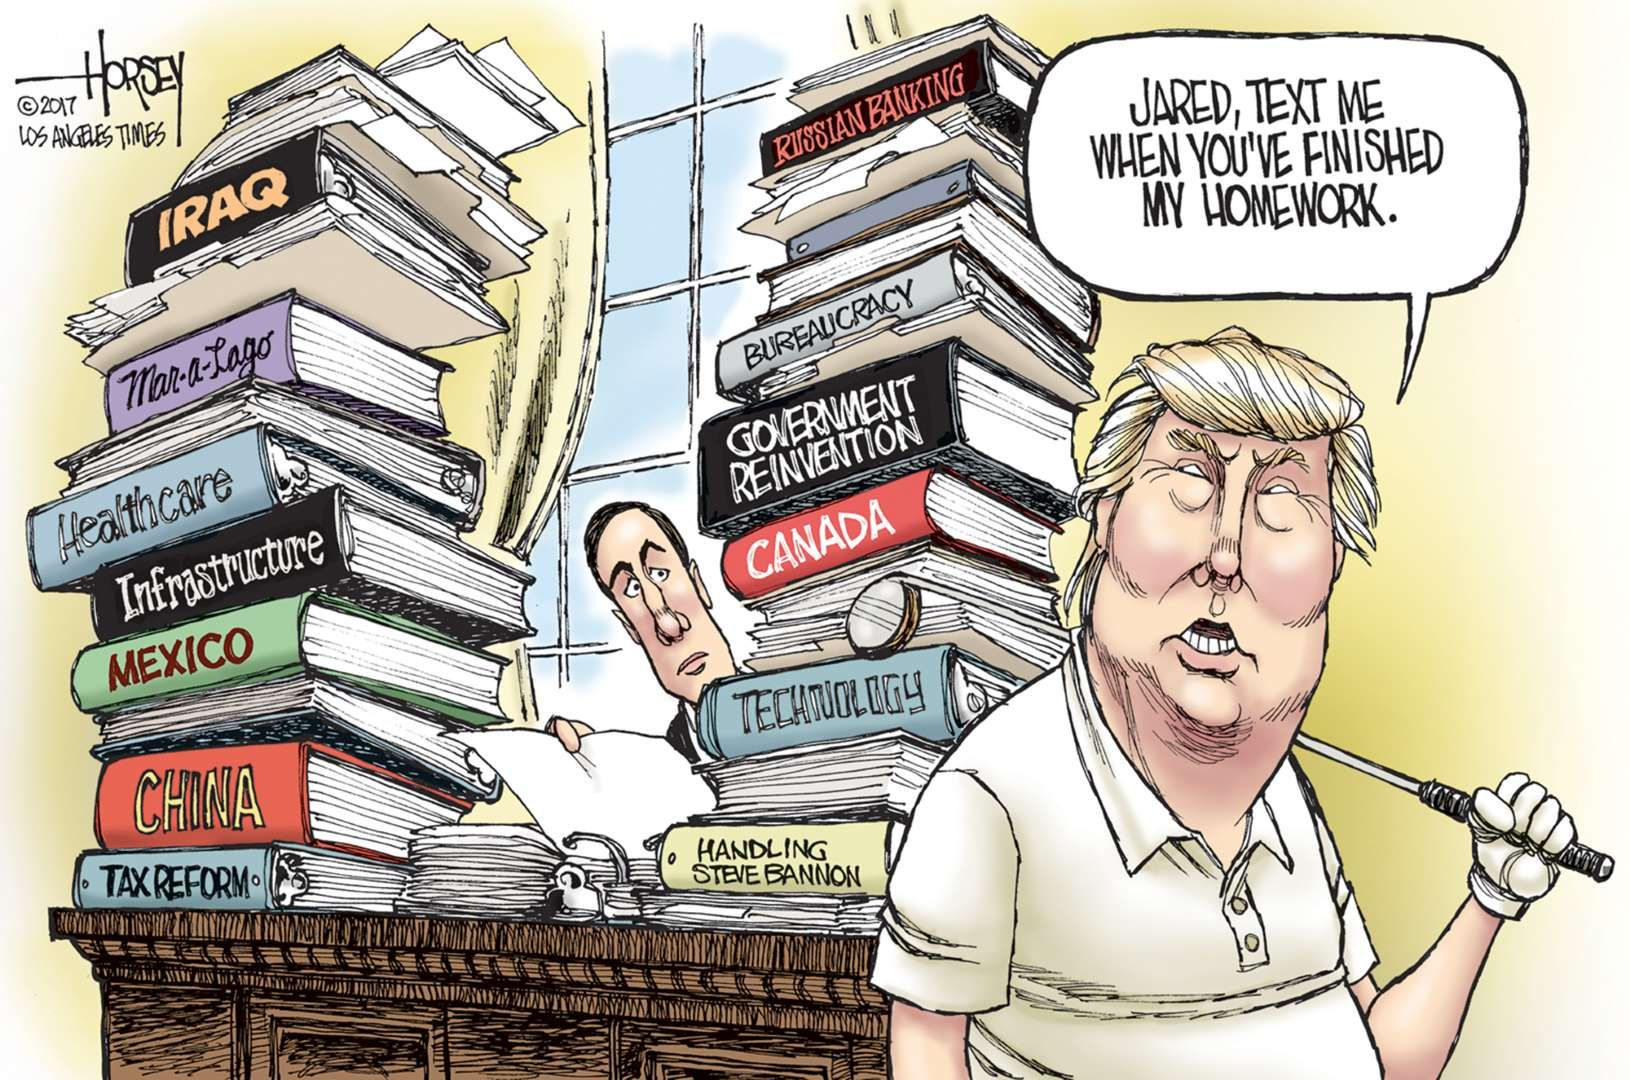 Donald Trump controlled by Jared Kushner